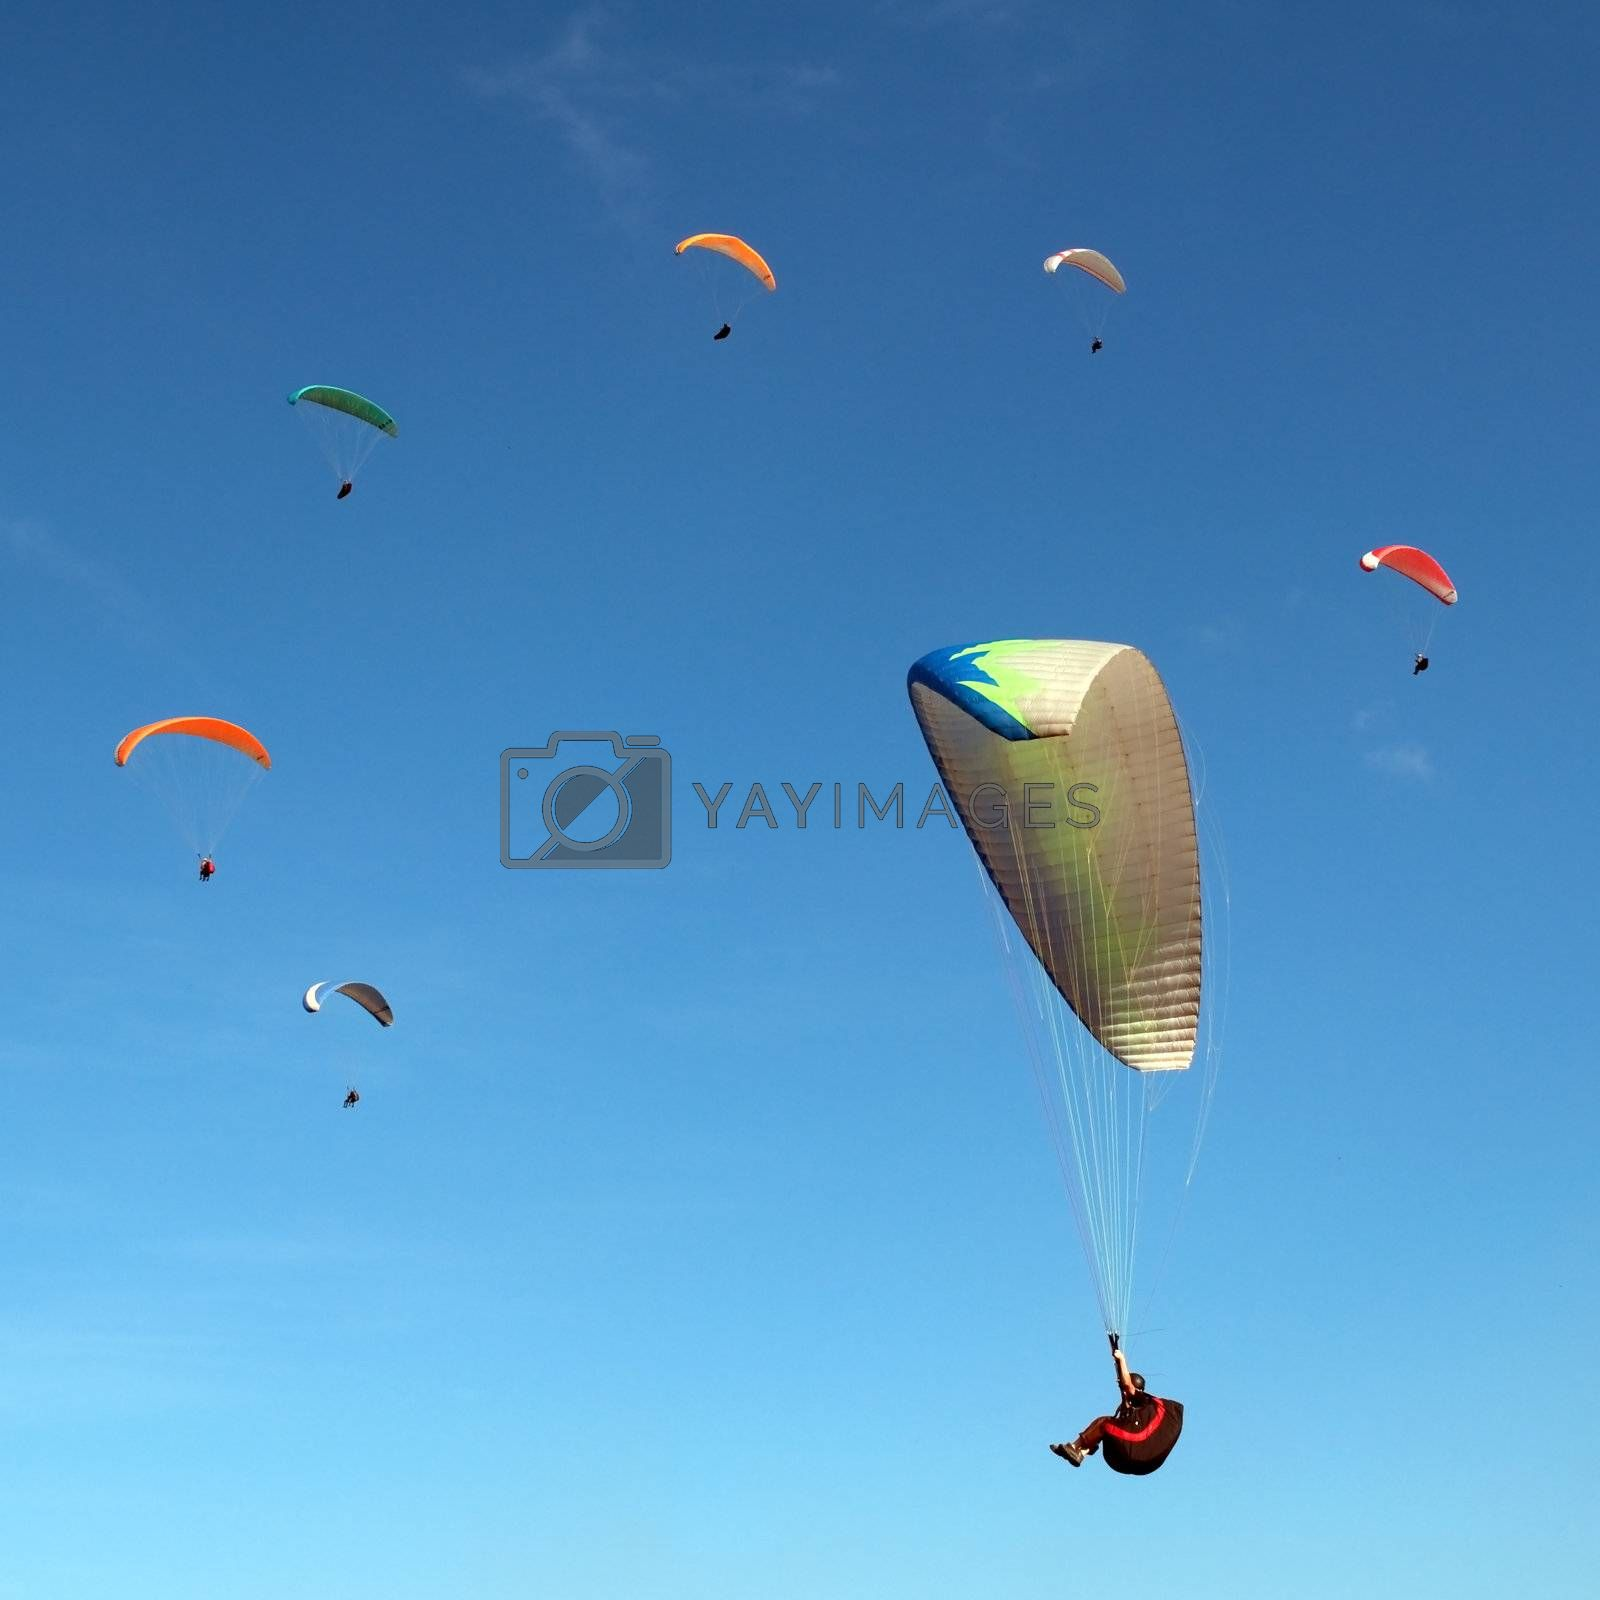 The ring of the paragliders flying in the sky